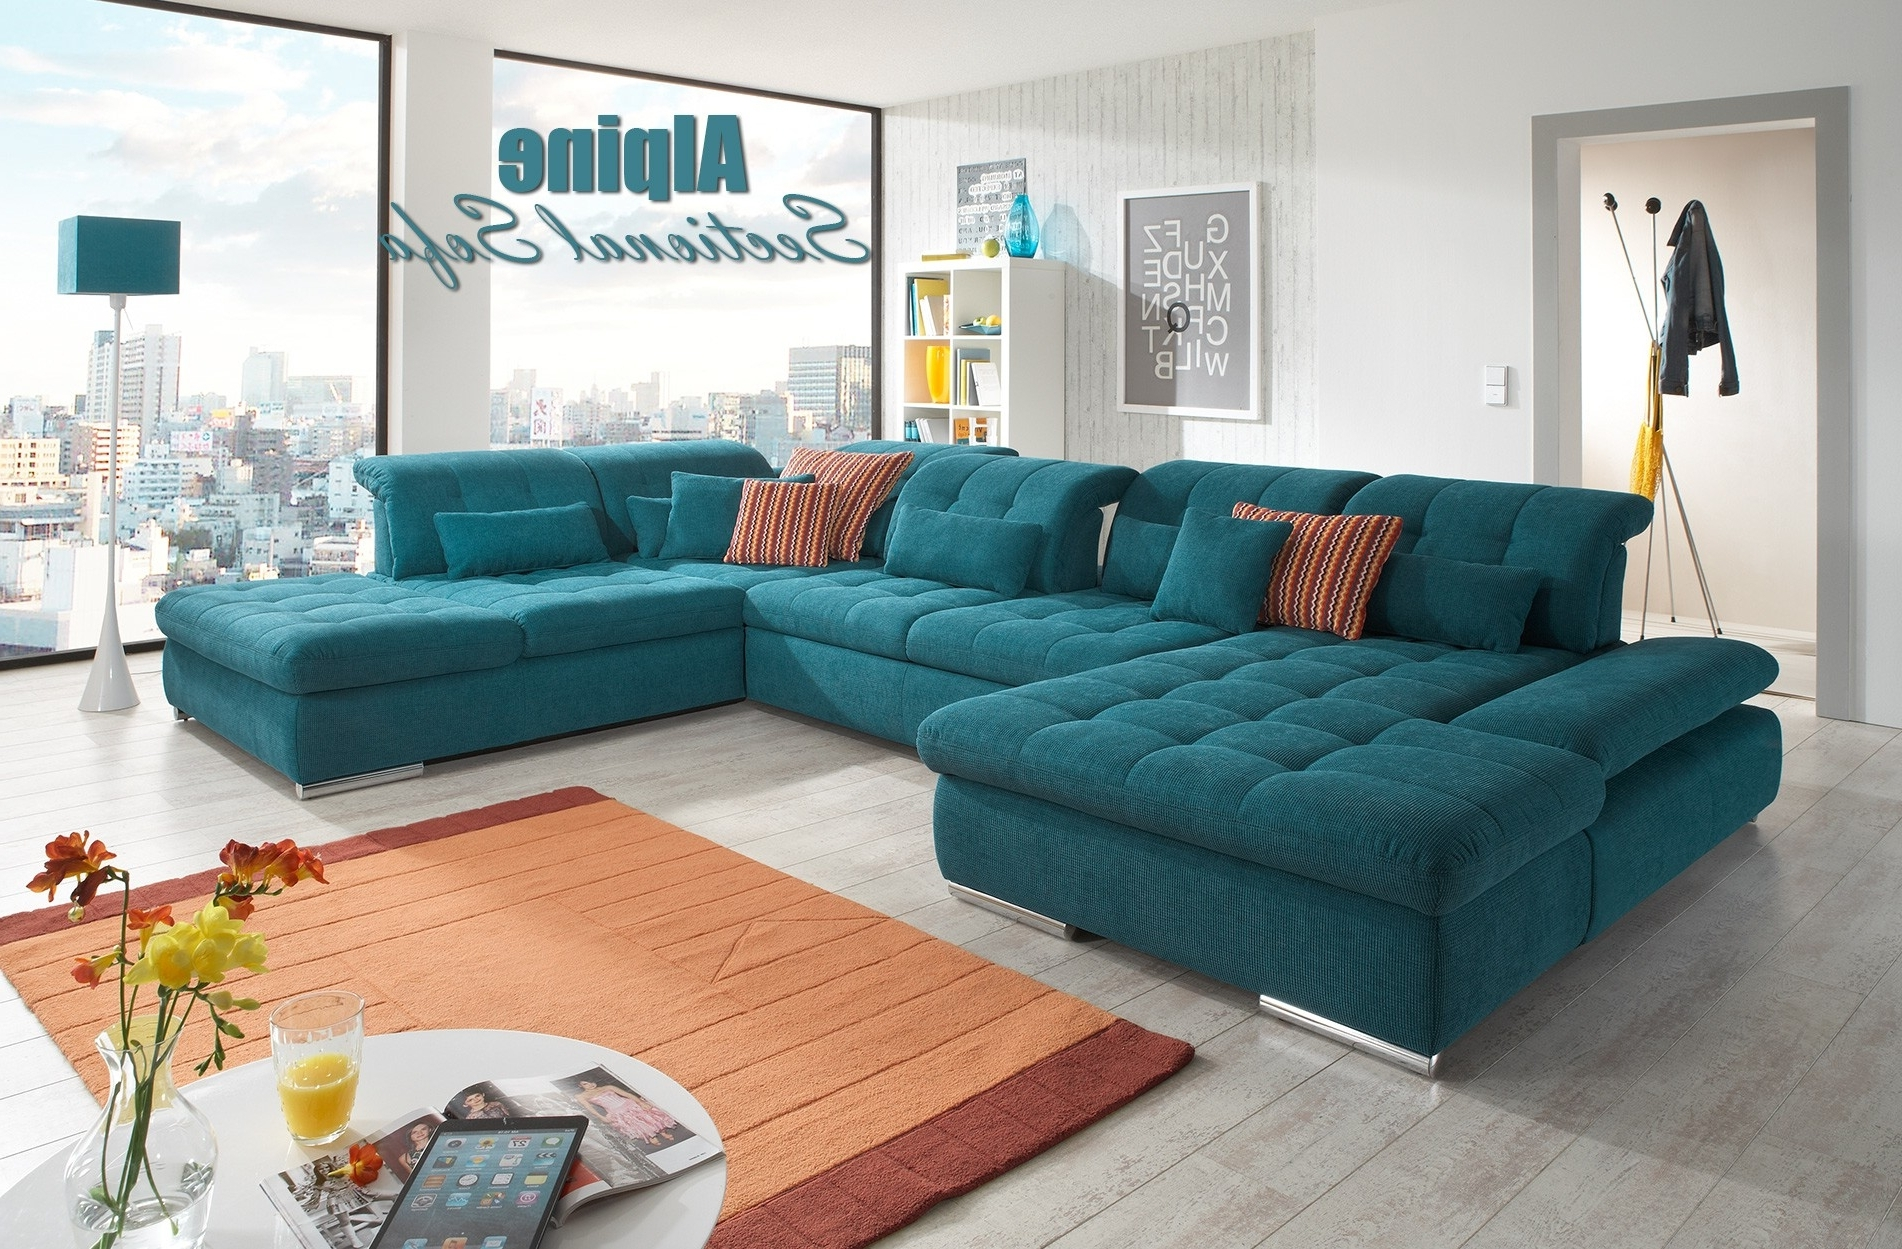 Green Sectional Sofas With Regard To Trendy Alpine Sectional Sofa In Green Fabric (View 6 of 15)